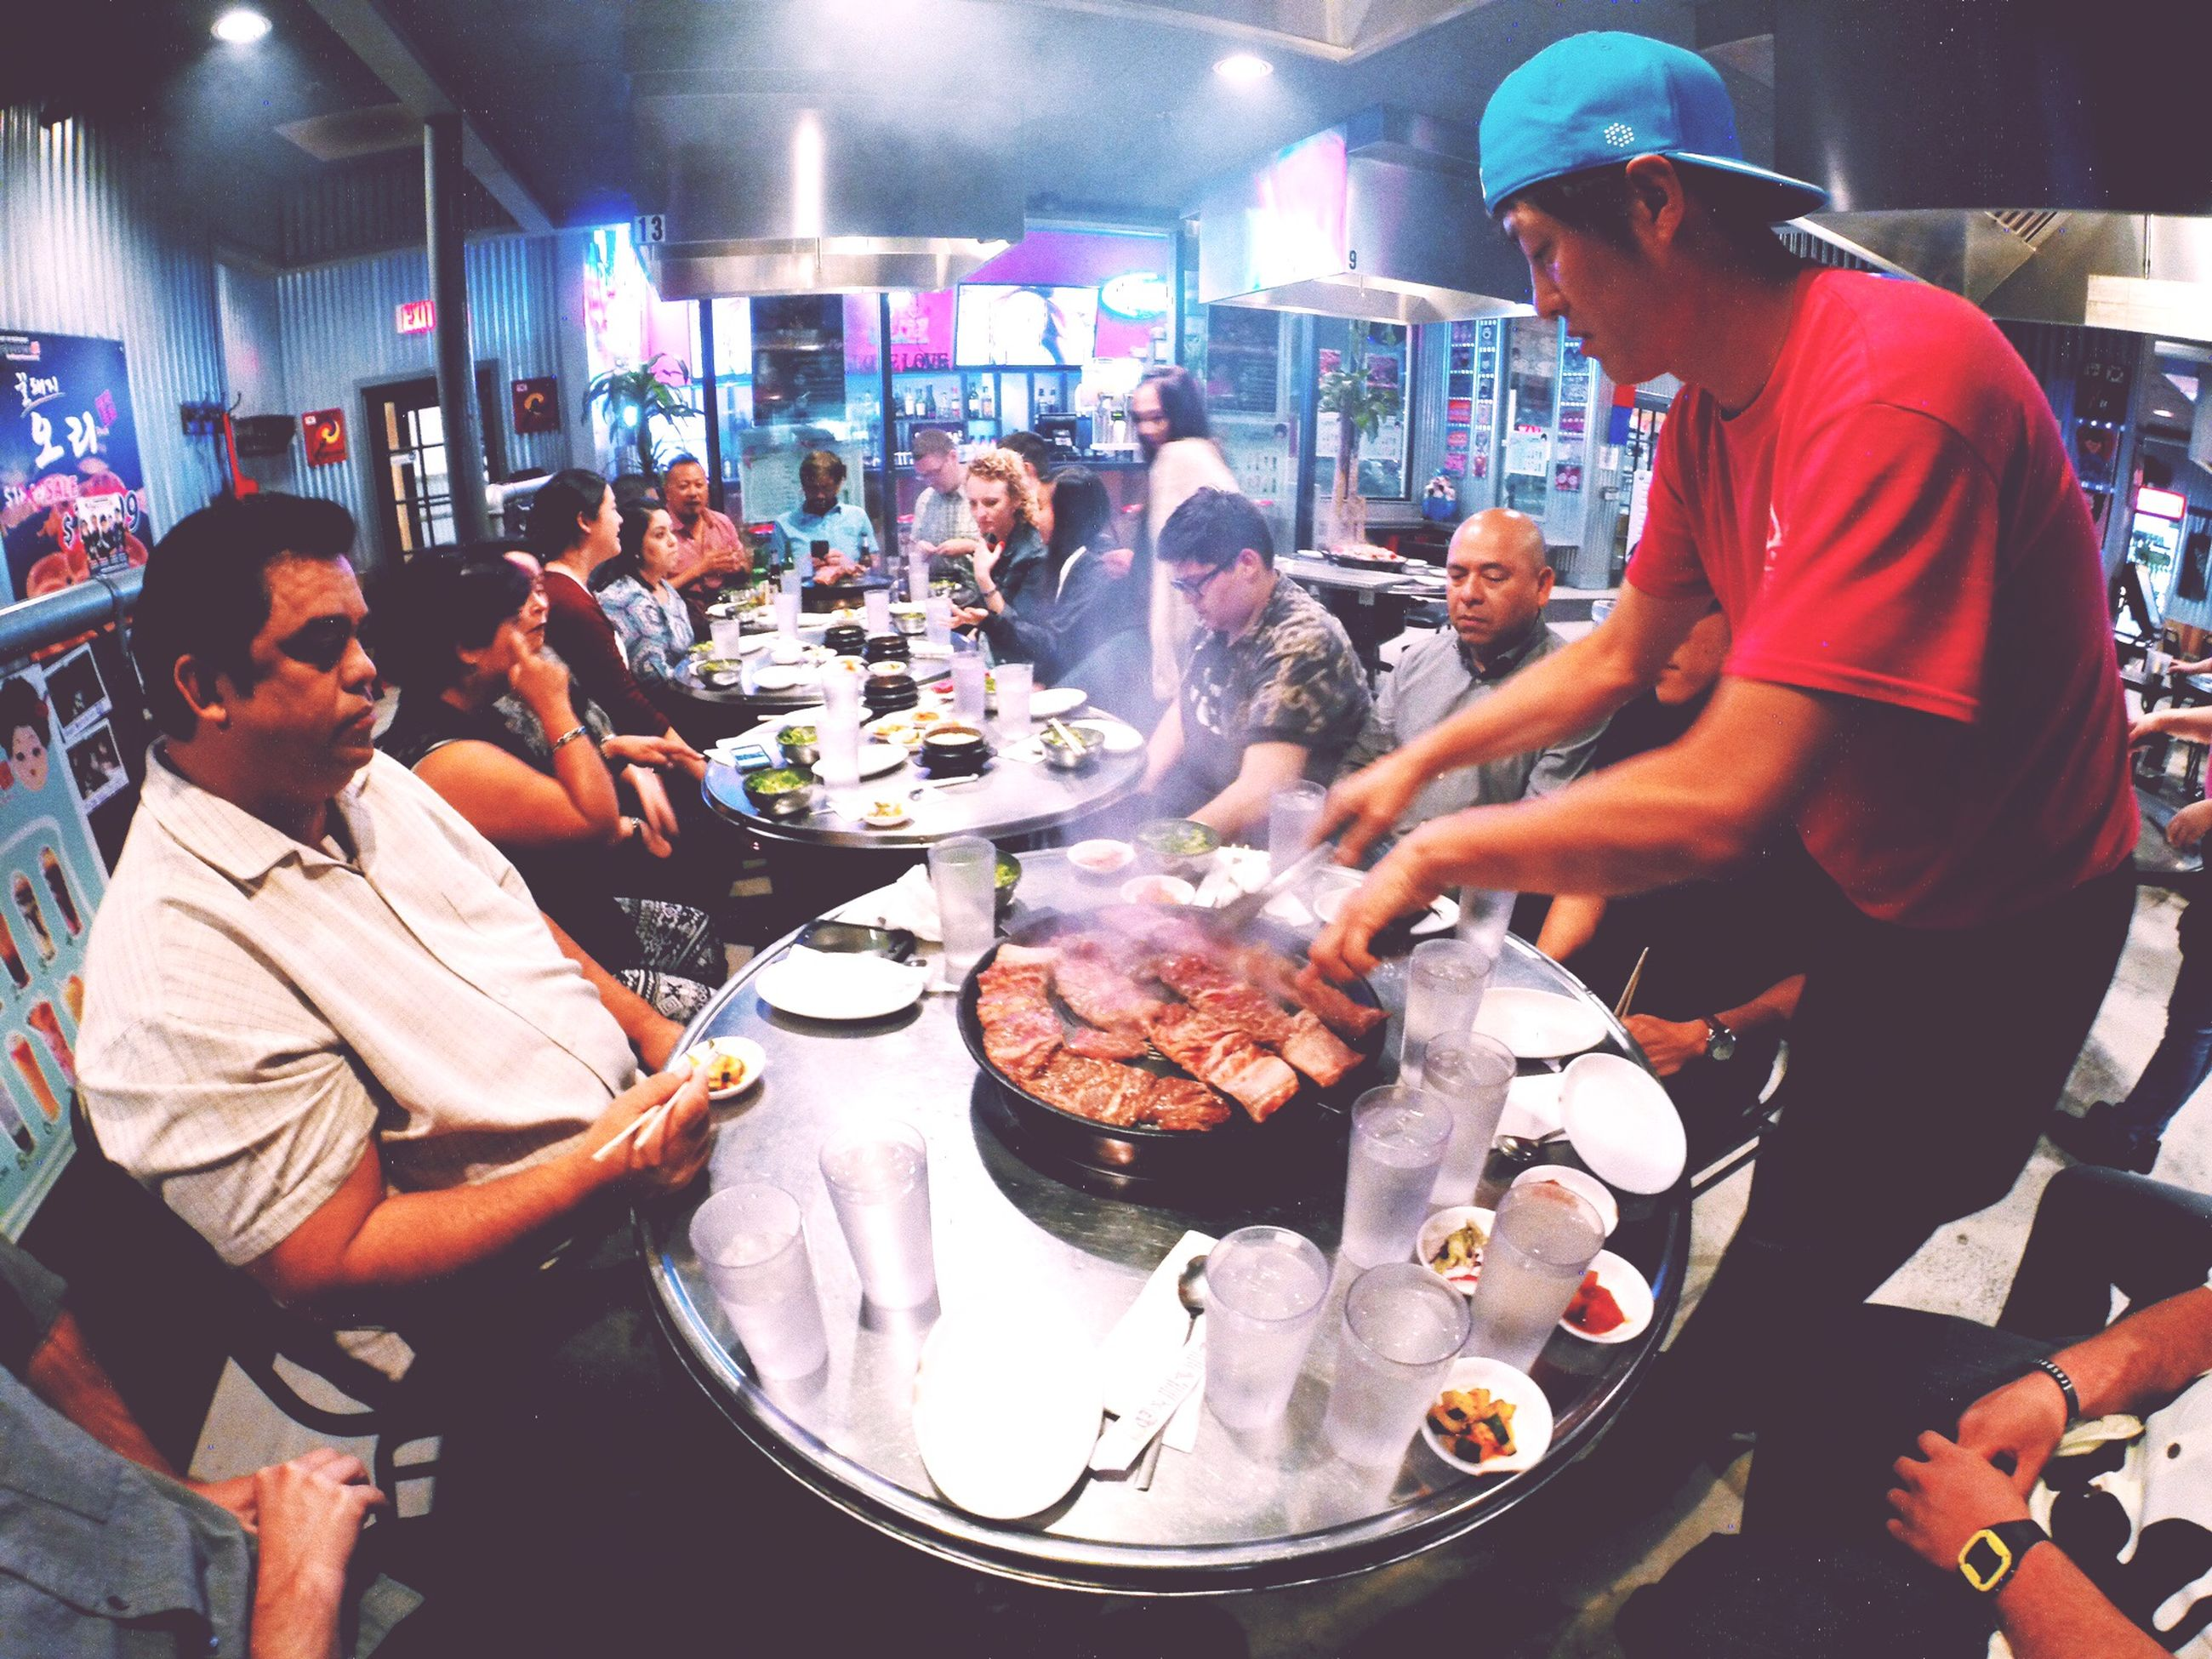 food and drink, food, freshness, indoors, lifestyles, men, preparation, holding, cooking, leisure activity, meat, occupation, heat - temperature, preparing food, healthy eating, casual clothing, person